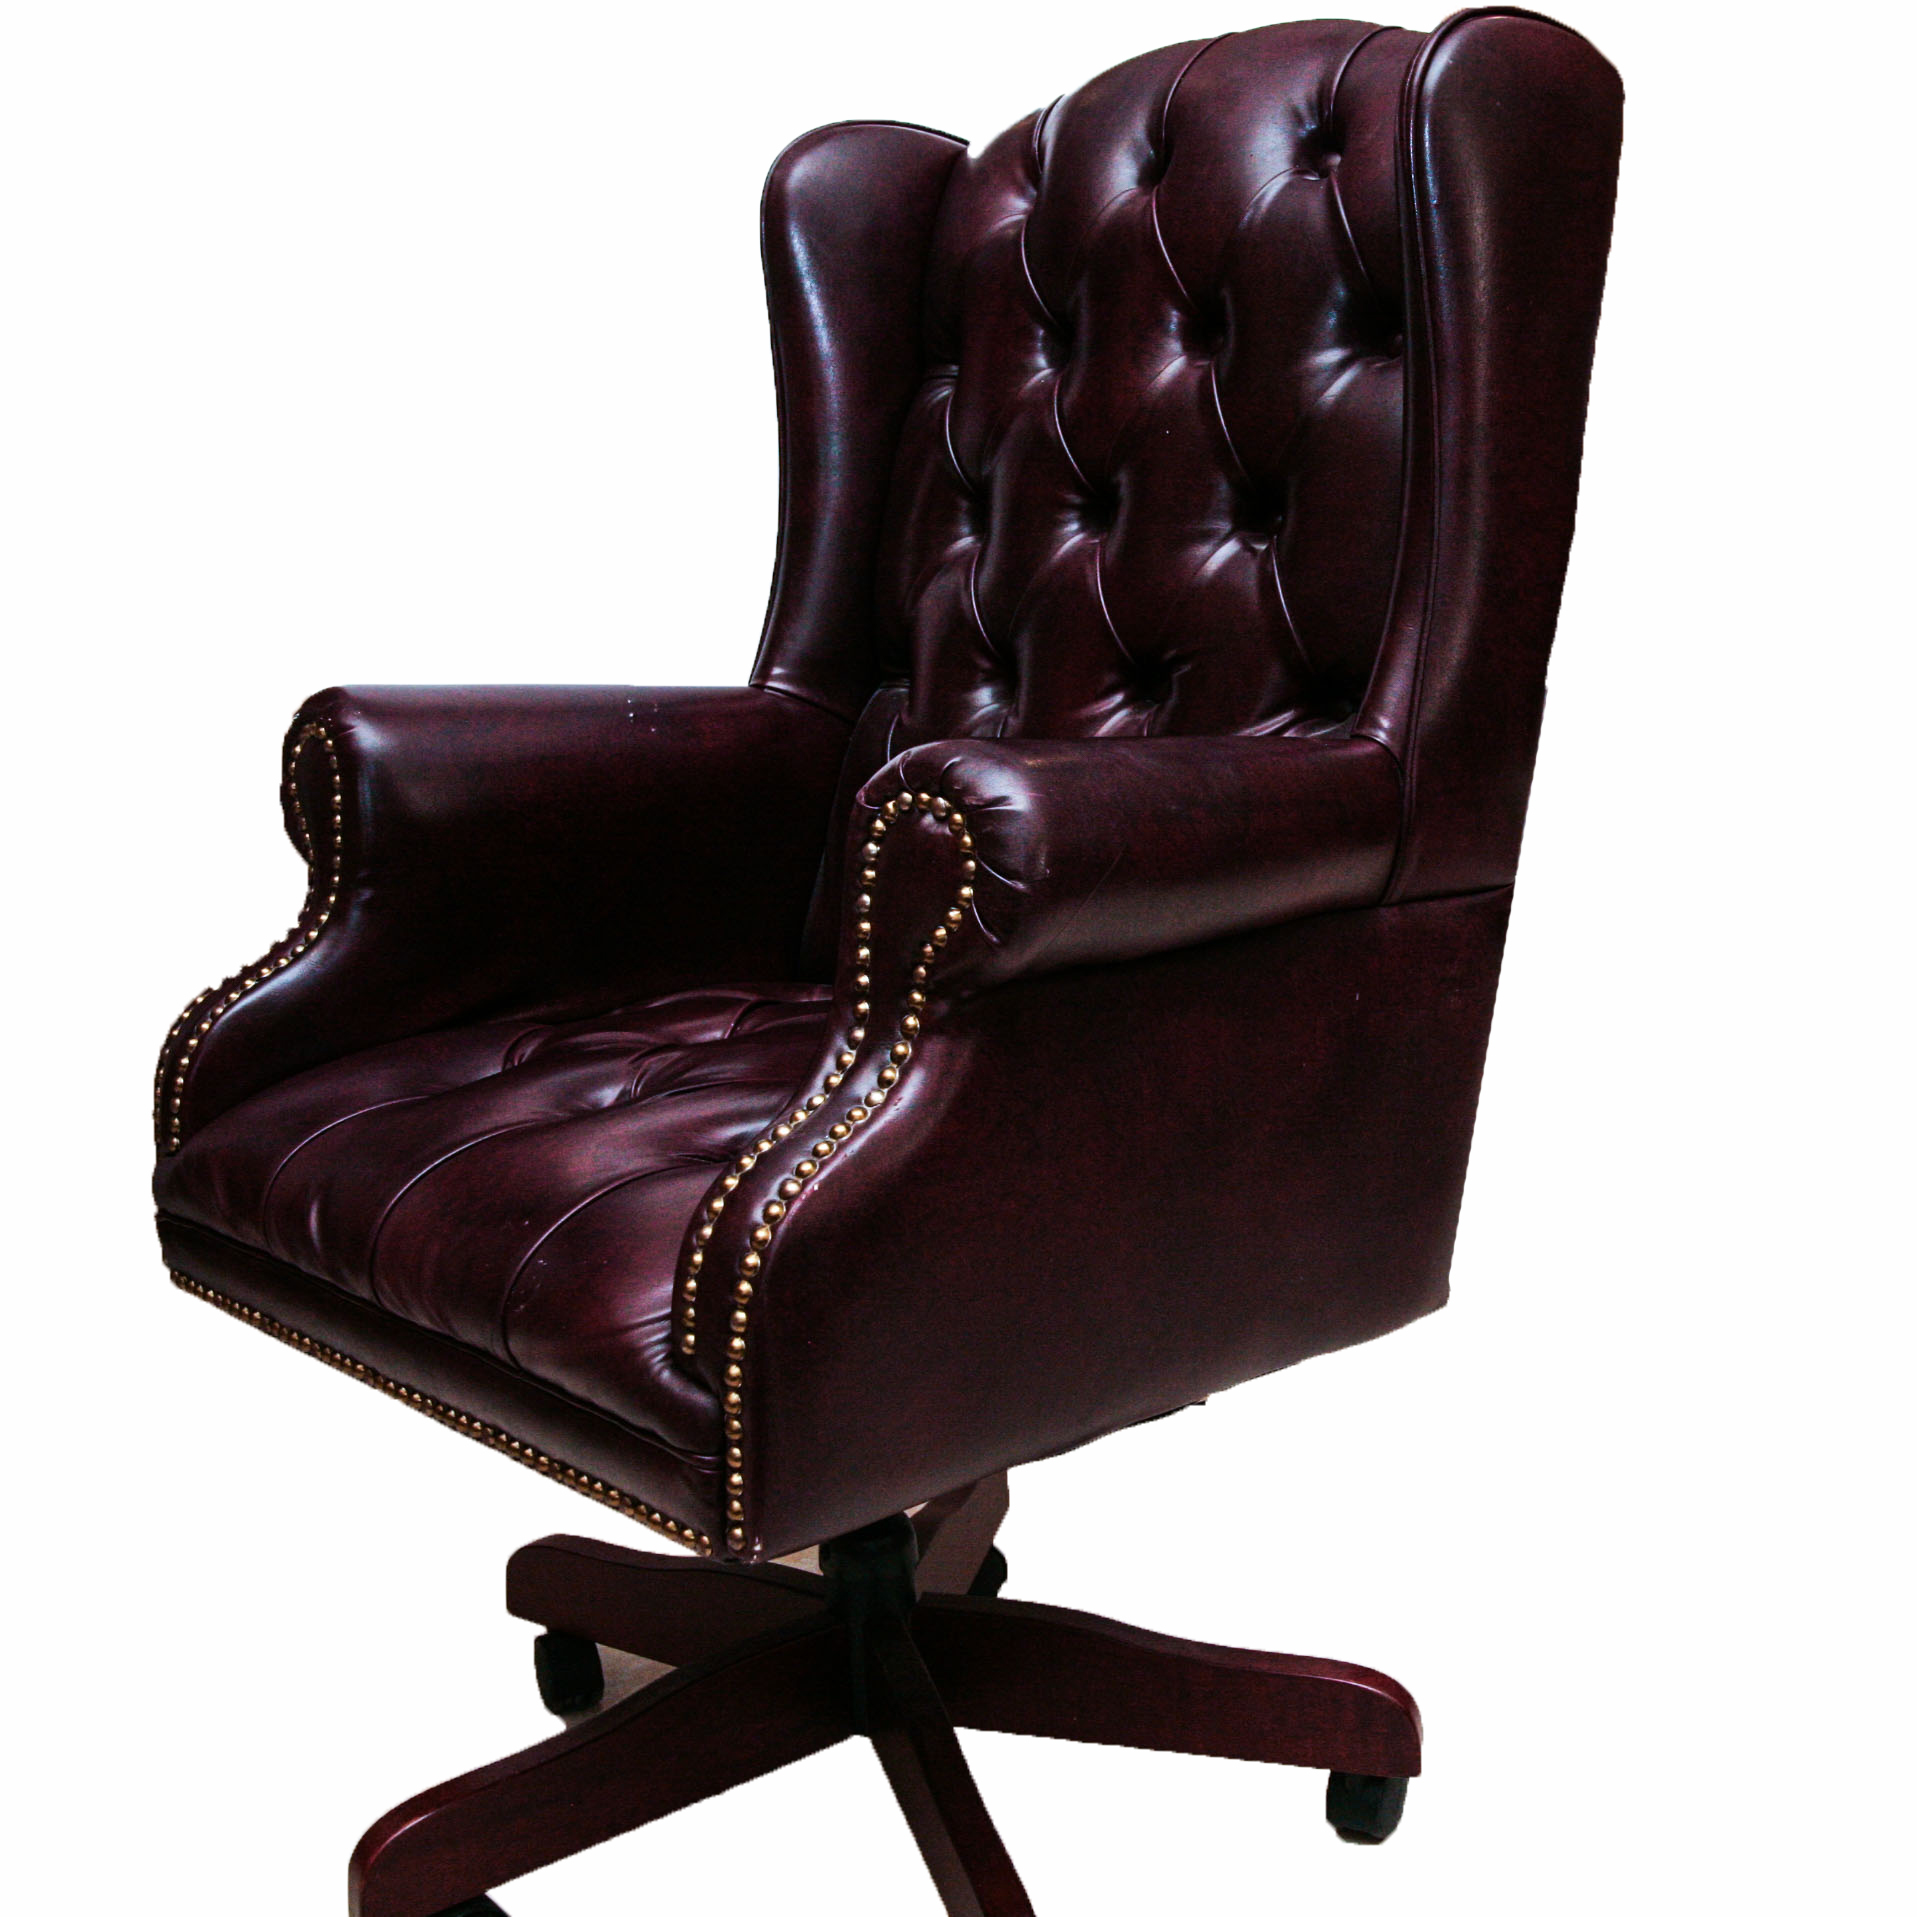 wingback office desk chair covers design faux leather ebth